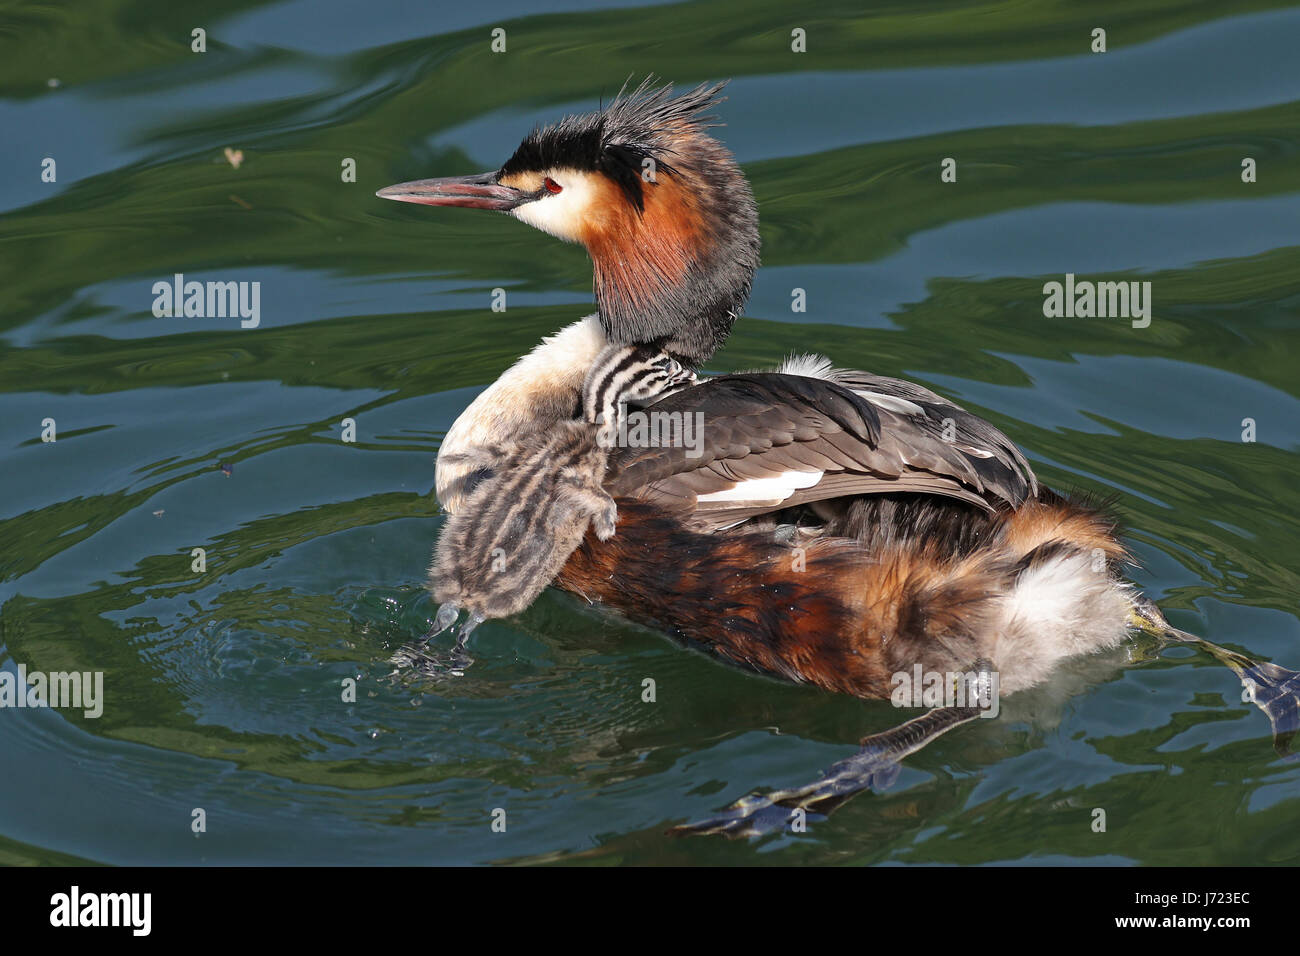 Great crested grebes, Podiceps cristatus, with baby chick climbing on its back in their natural habitat - Stock Image